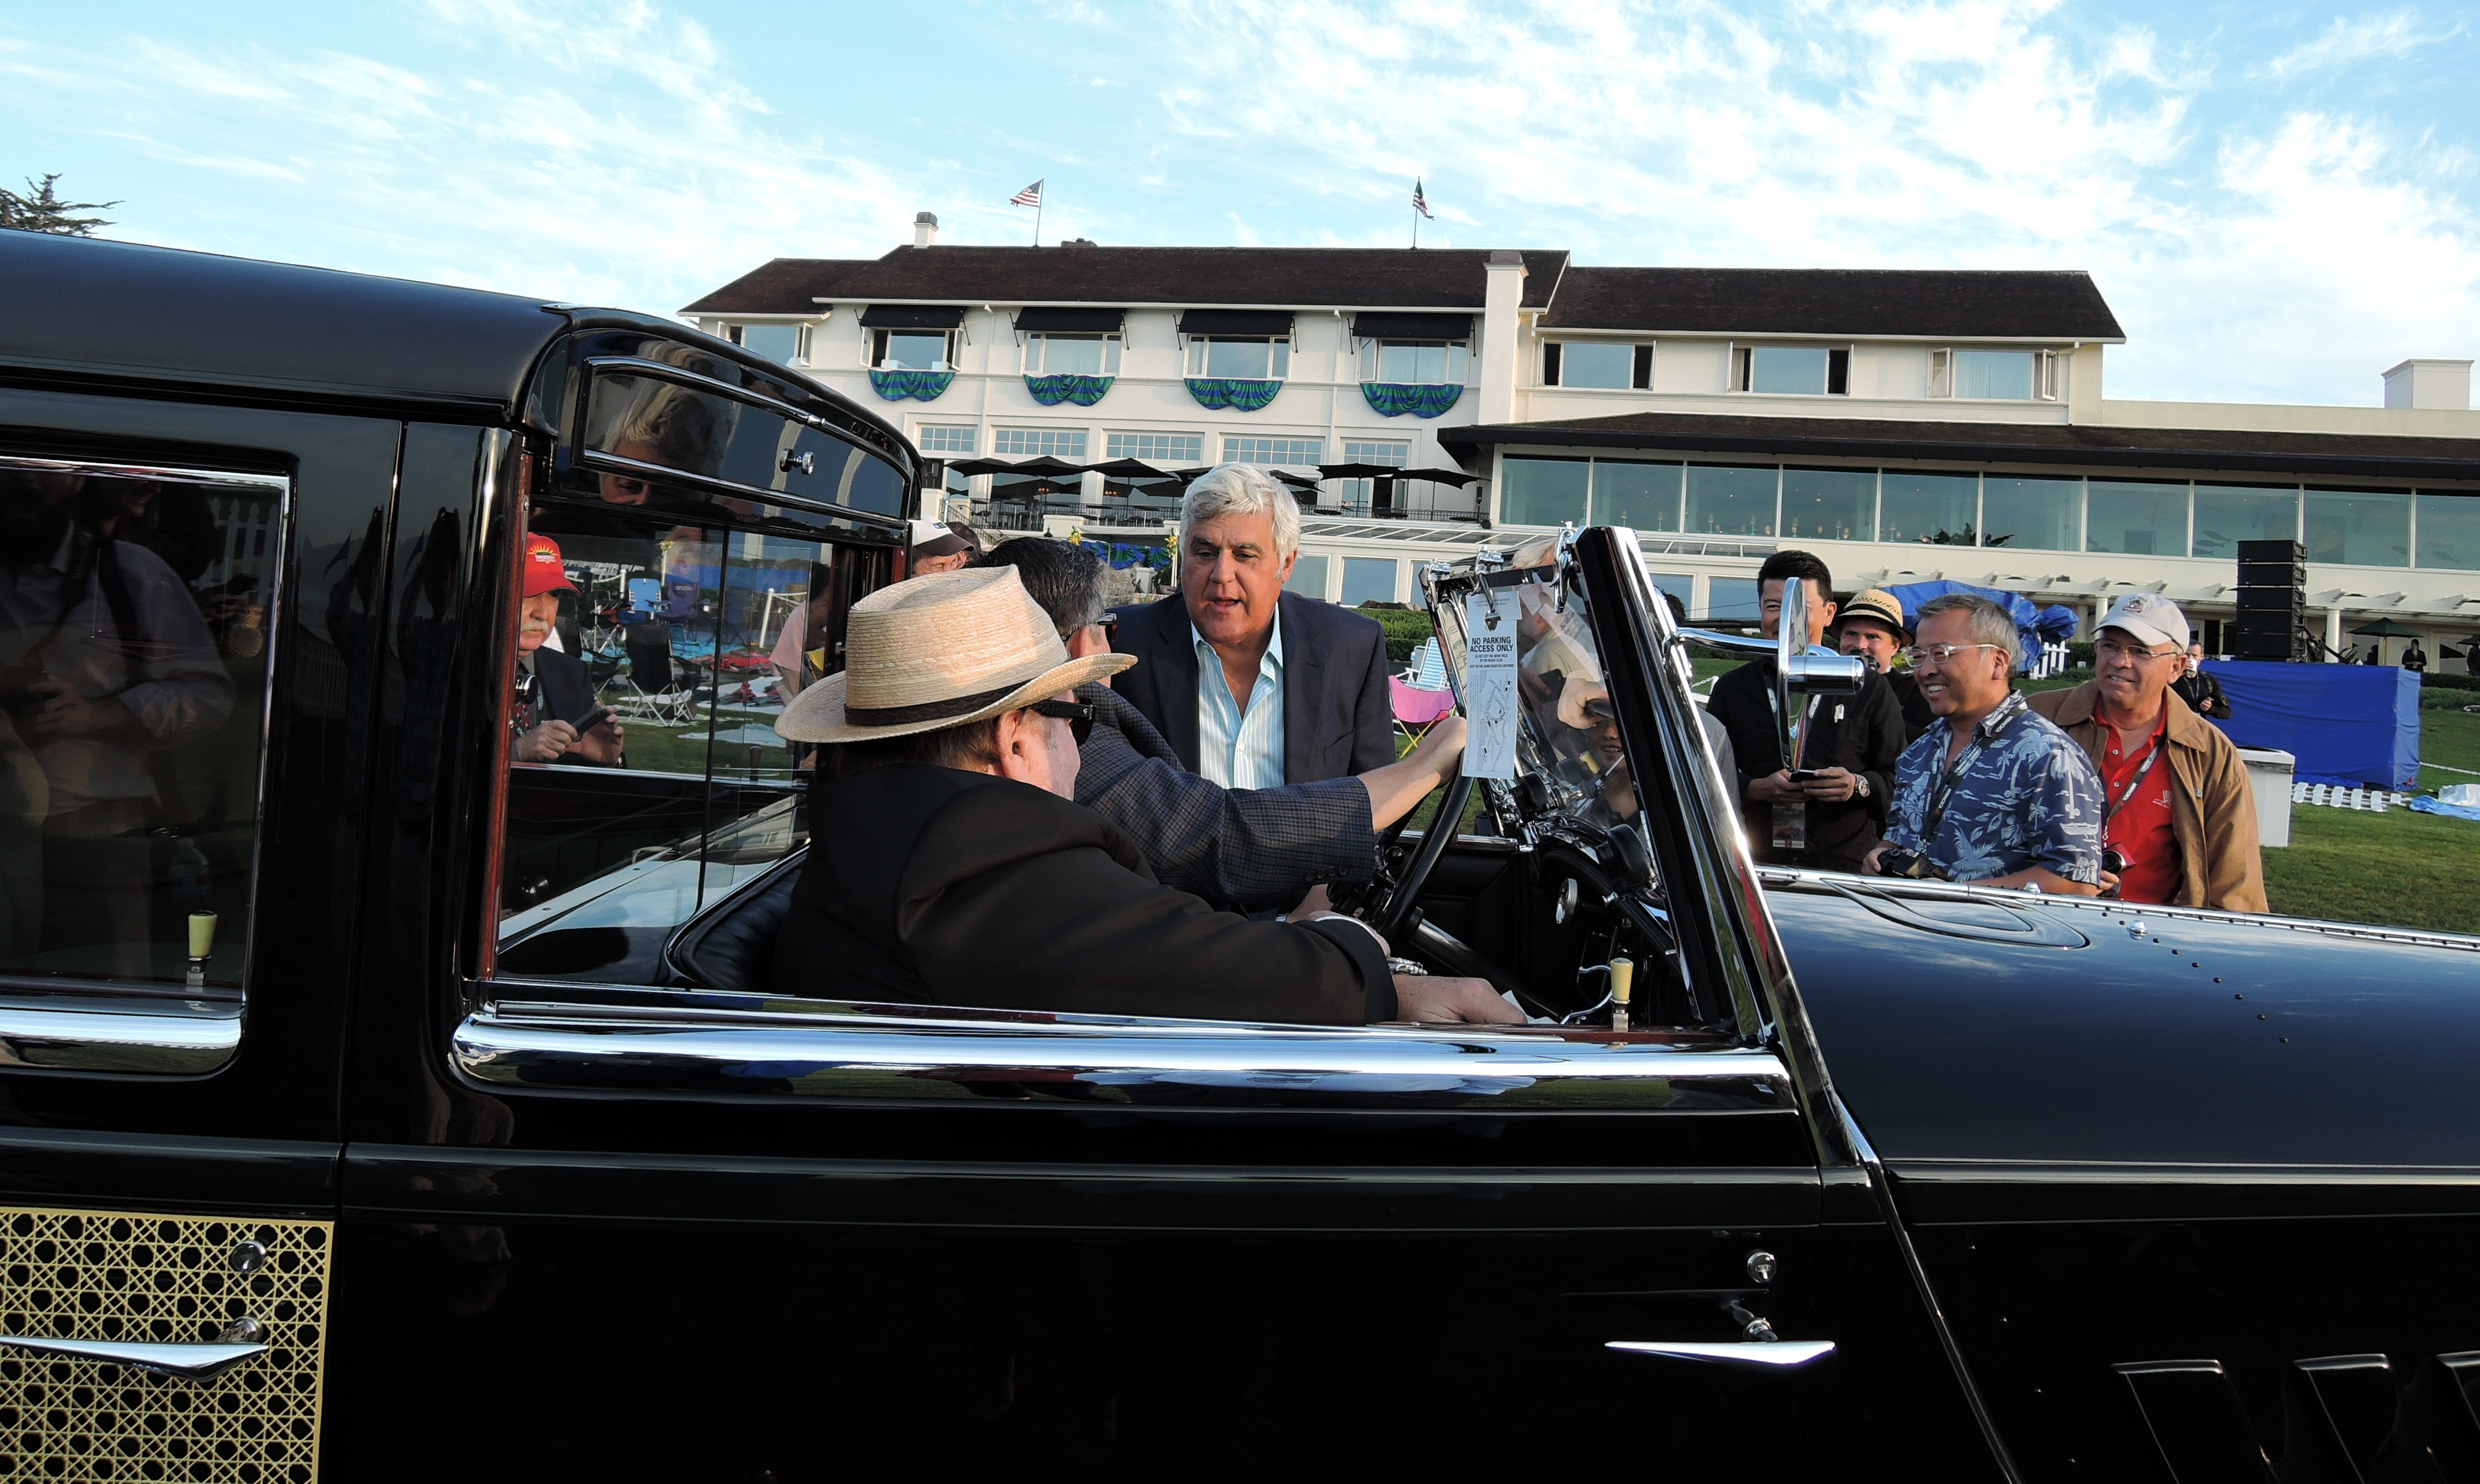 Jay Leno having a chat - concours d'elegance